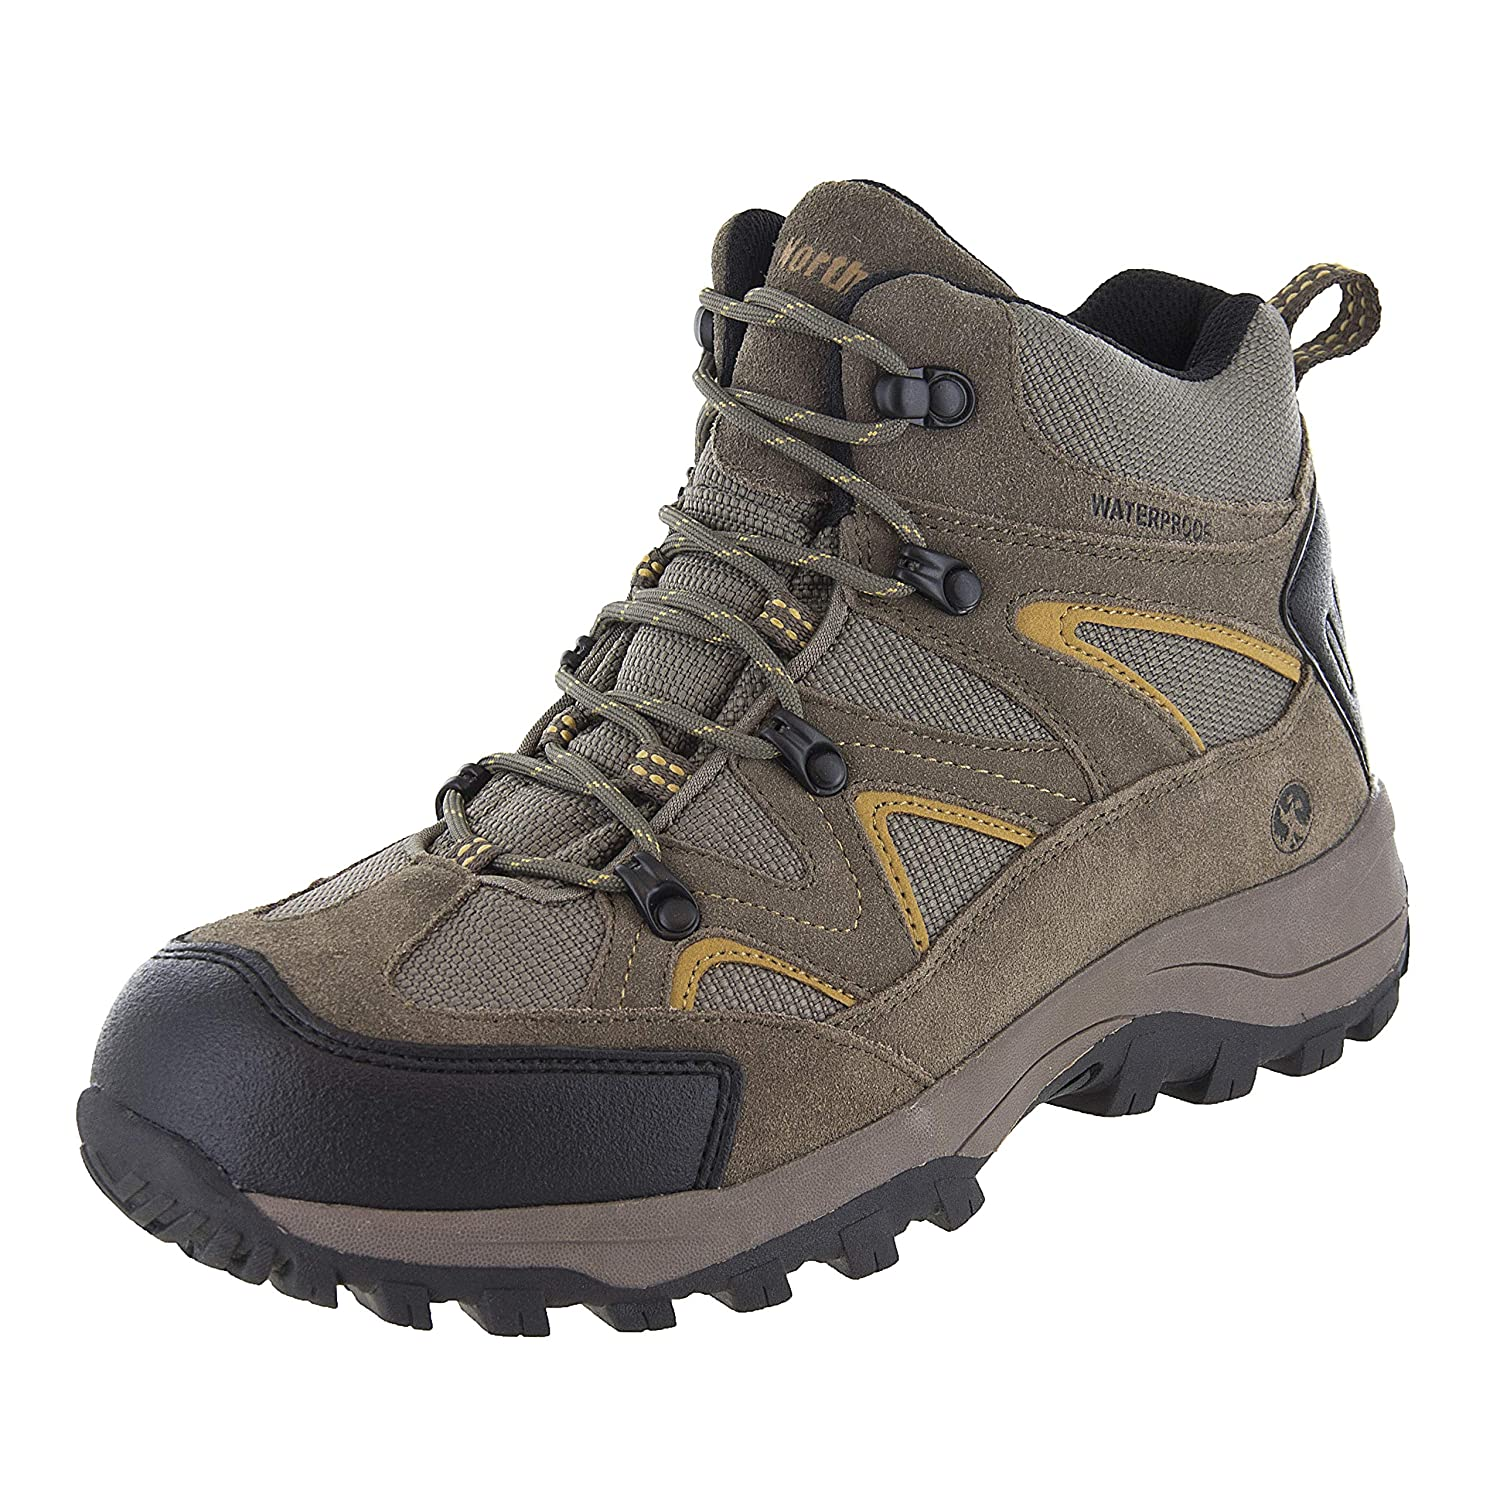 8a1300aa063 Northside Mens Snohomish Leather Waterproof Mid Hiking Boot